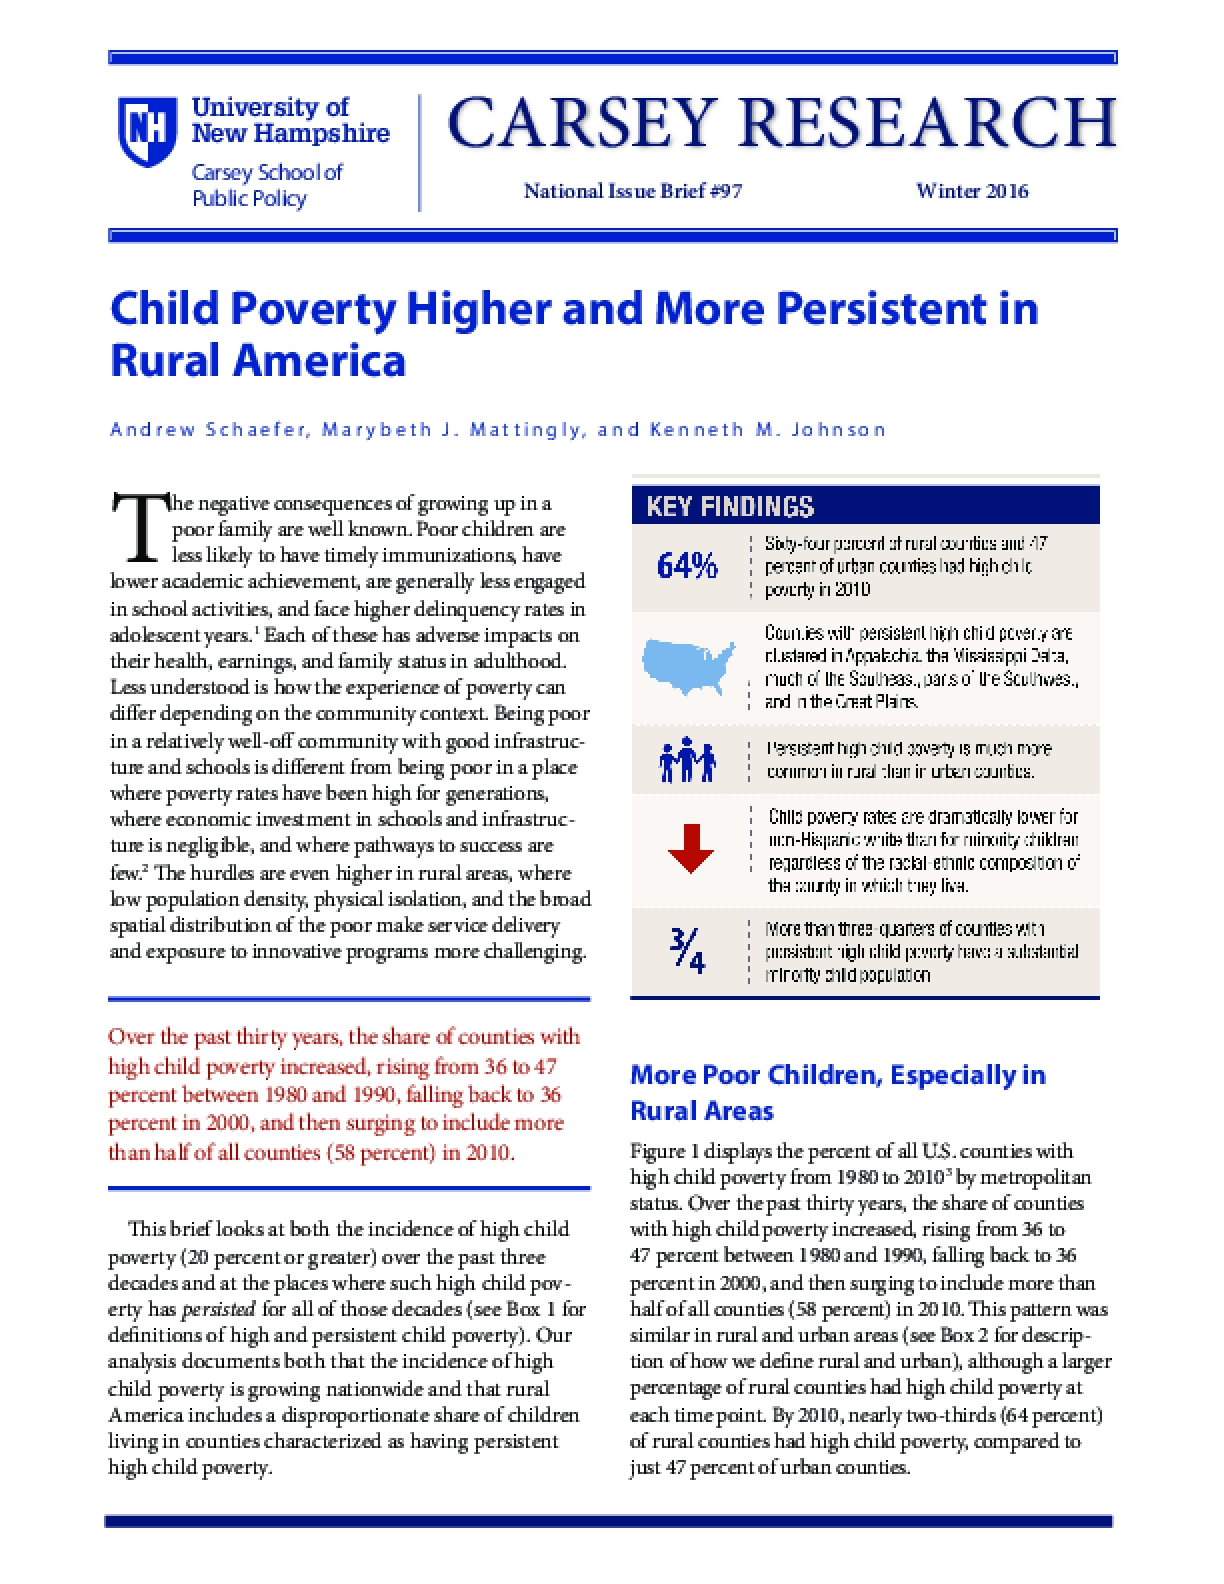 Child Poverty Higher and More Persistent in Rural America